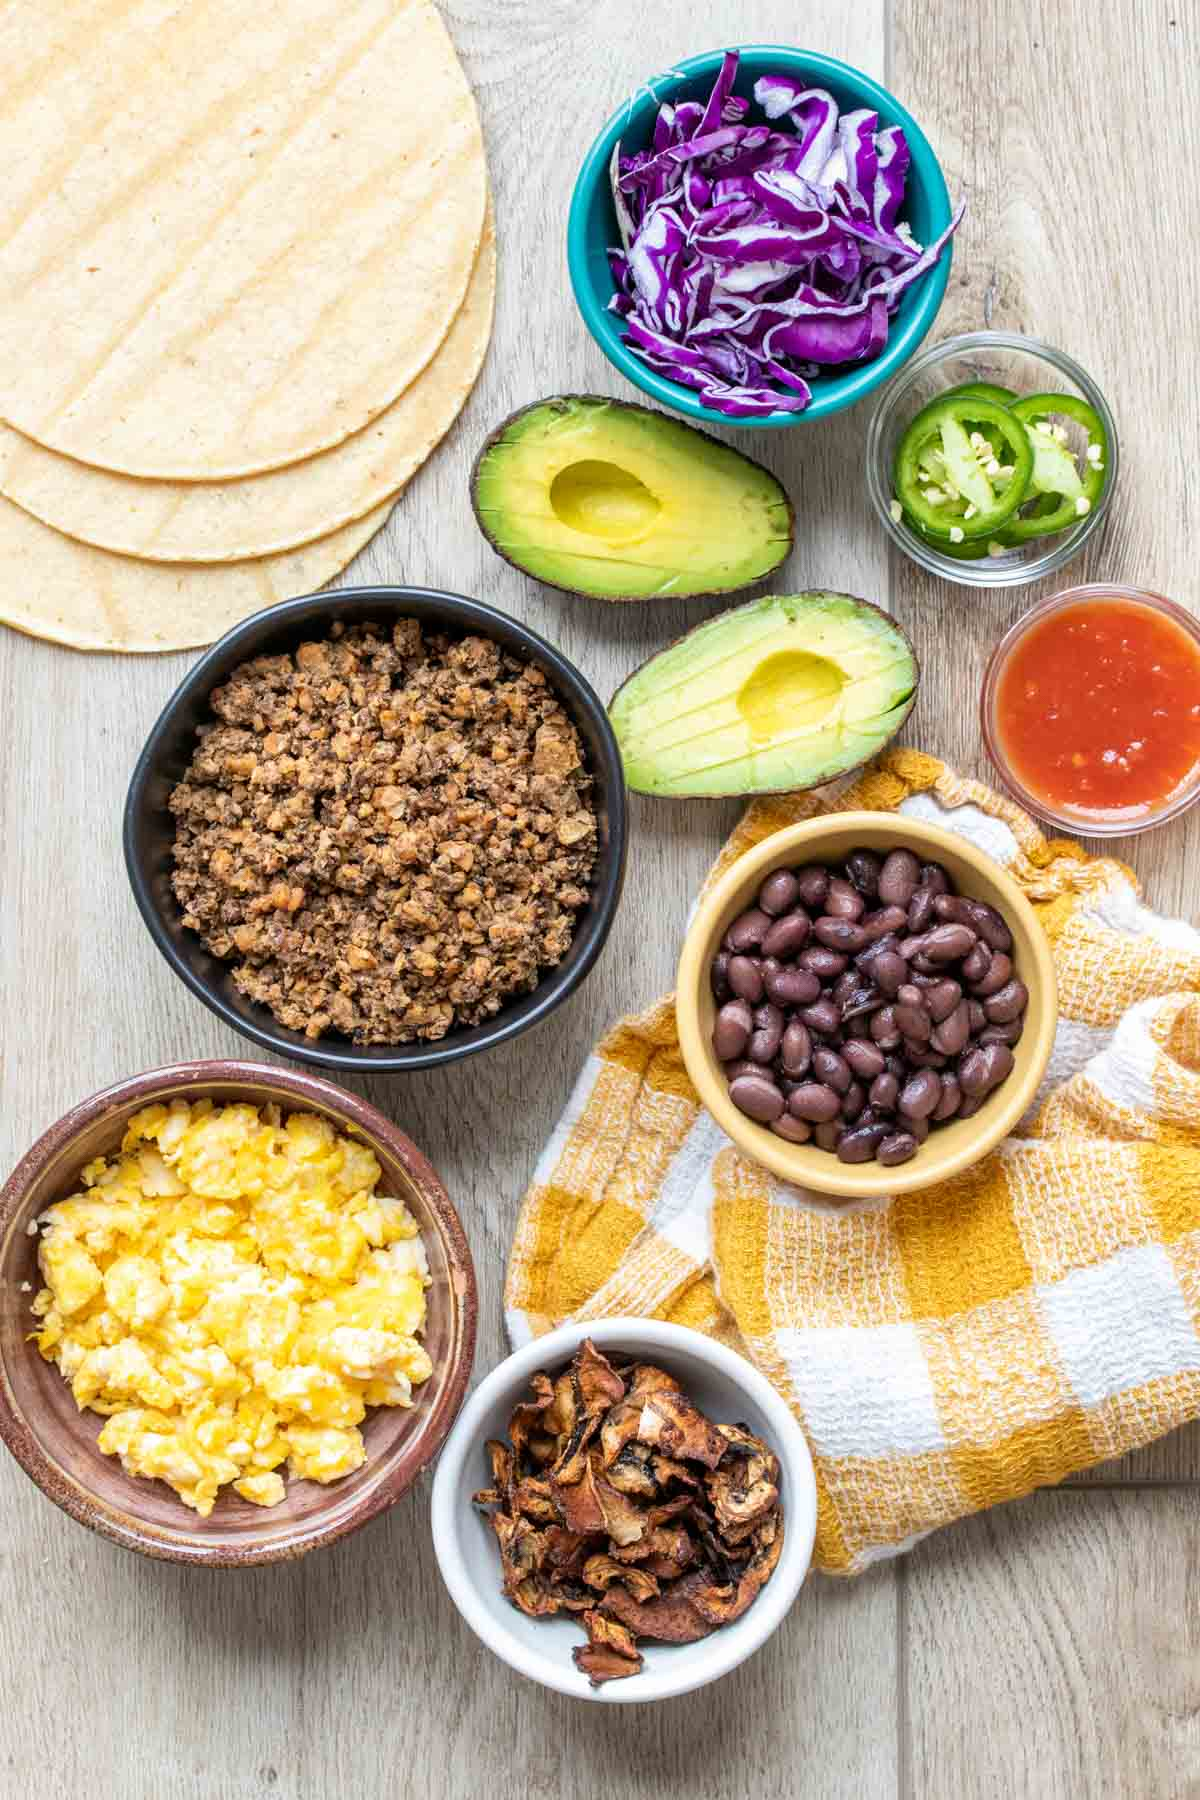 Ingredients in bowls needed to make breakfast tacos next to tortillas and avocado halves